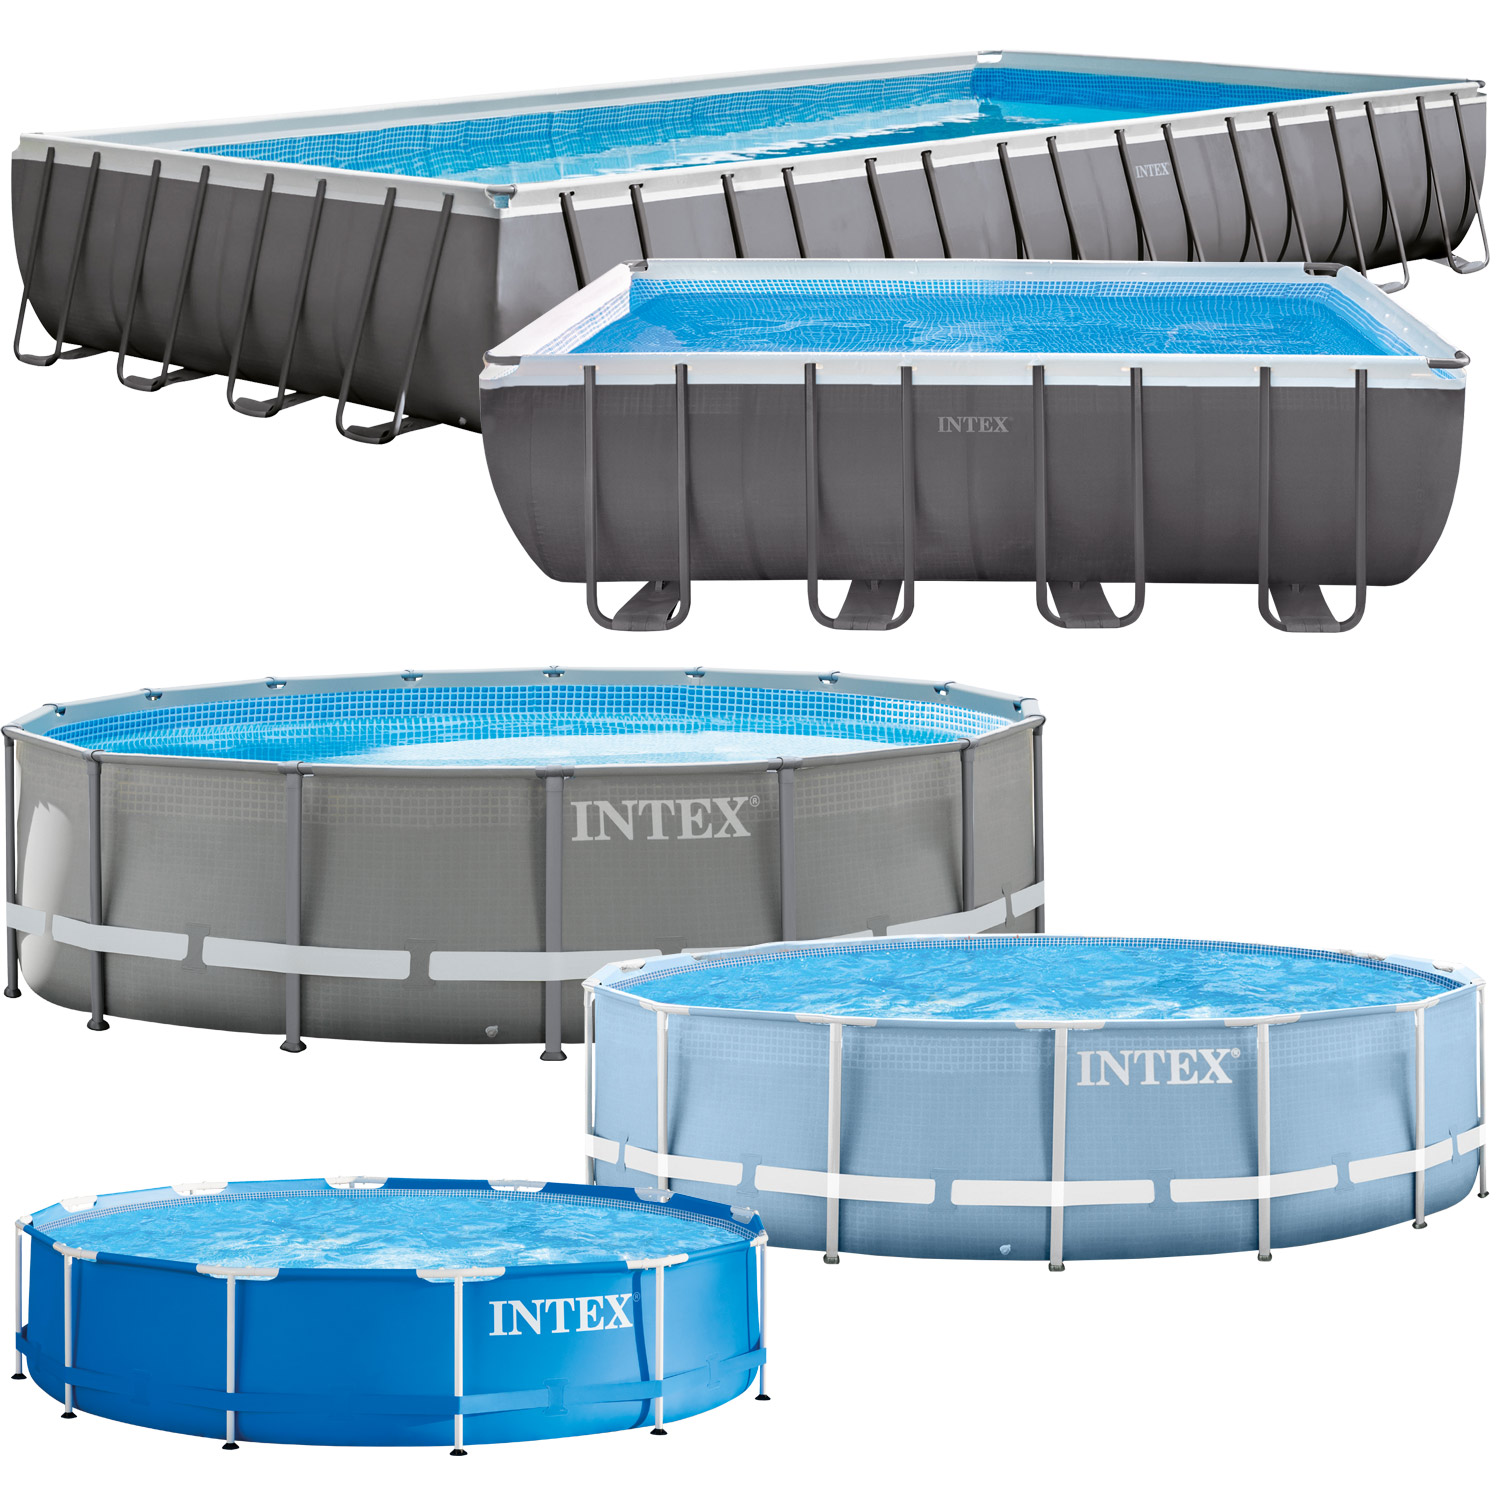 Intex frame stahlrohrbecken swimming pool schwimmbad for Garten pool intex